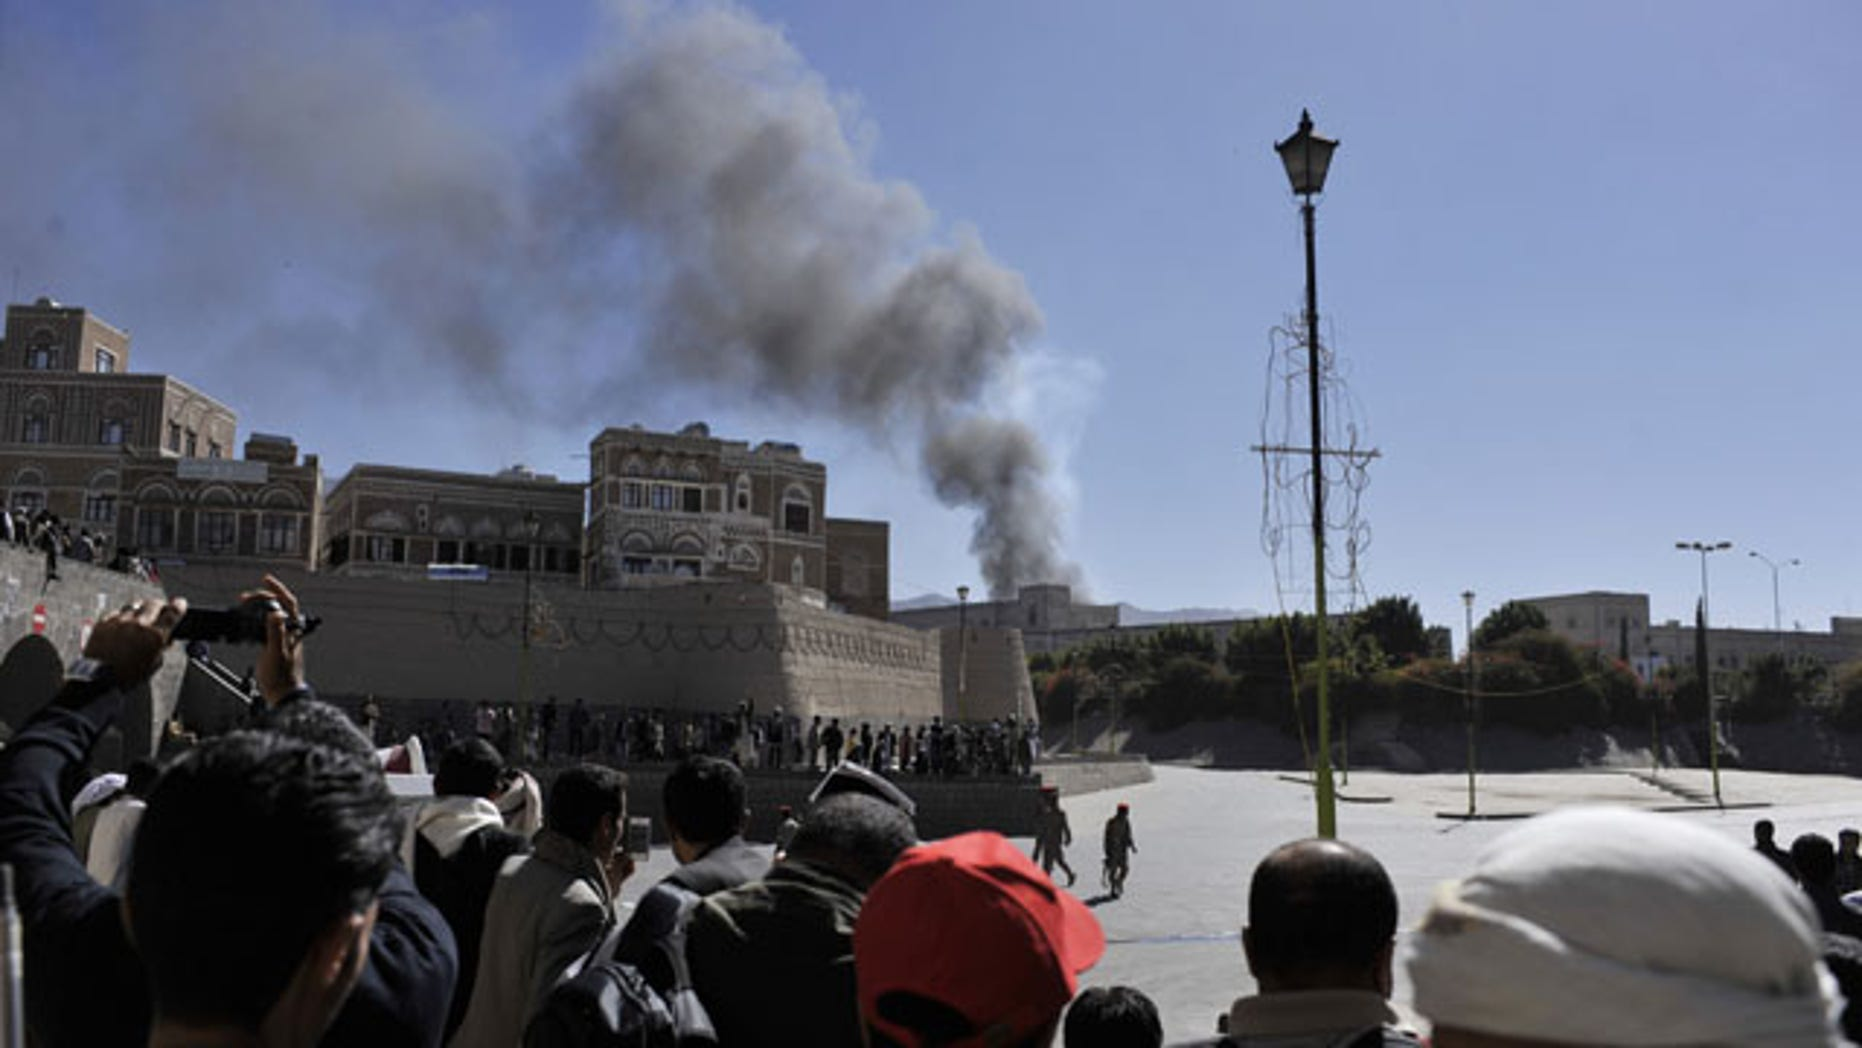 December 5, 2013: Smoke rises after an explosion at the Defense Ministry complex in Sanaa, Yemen. (AP Photo/Mohammed Hamoud)